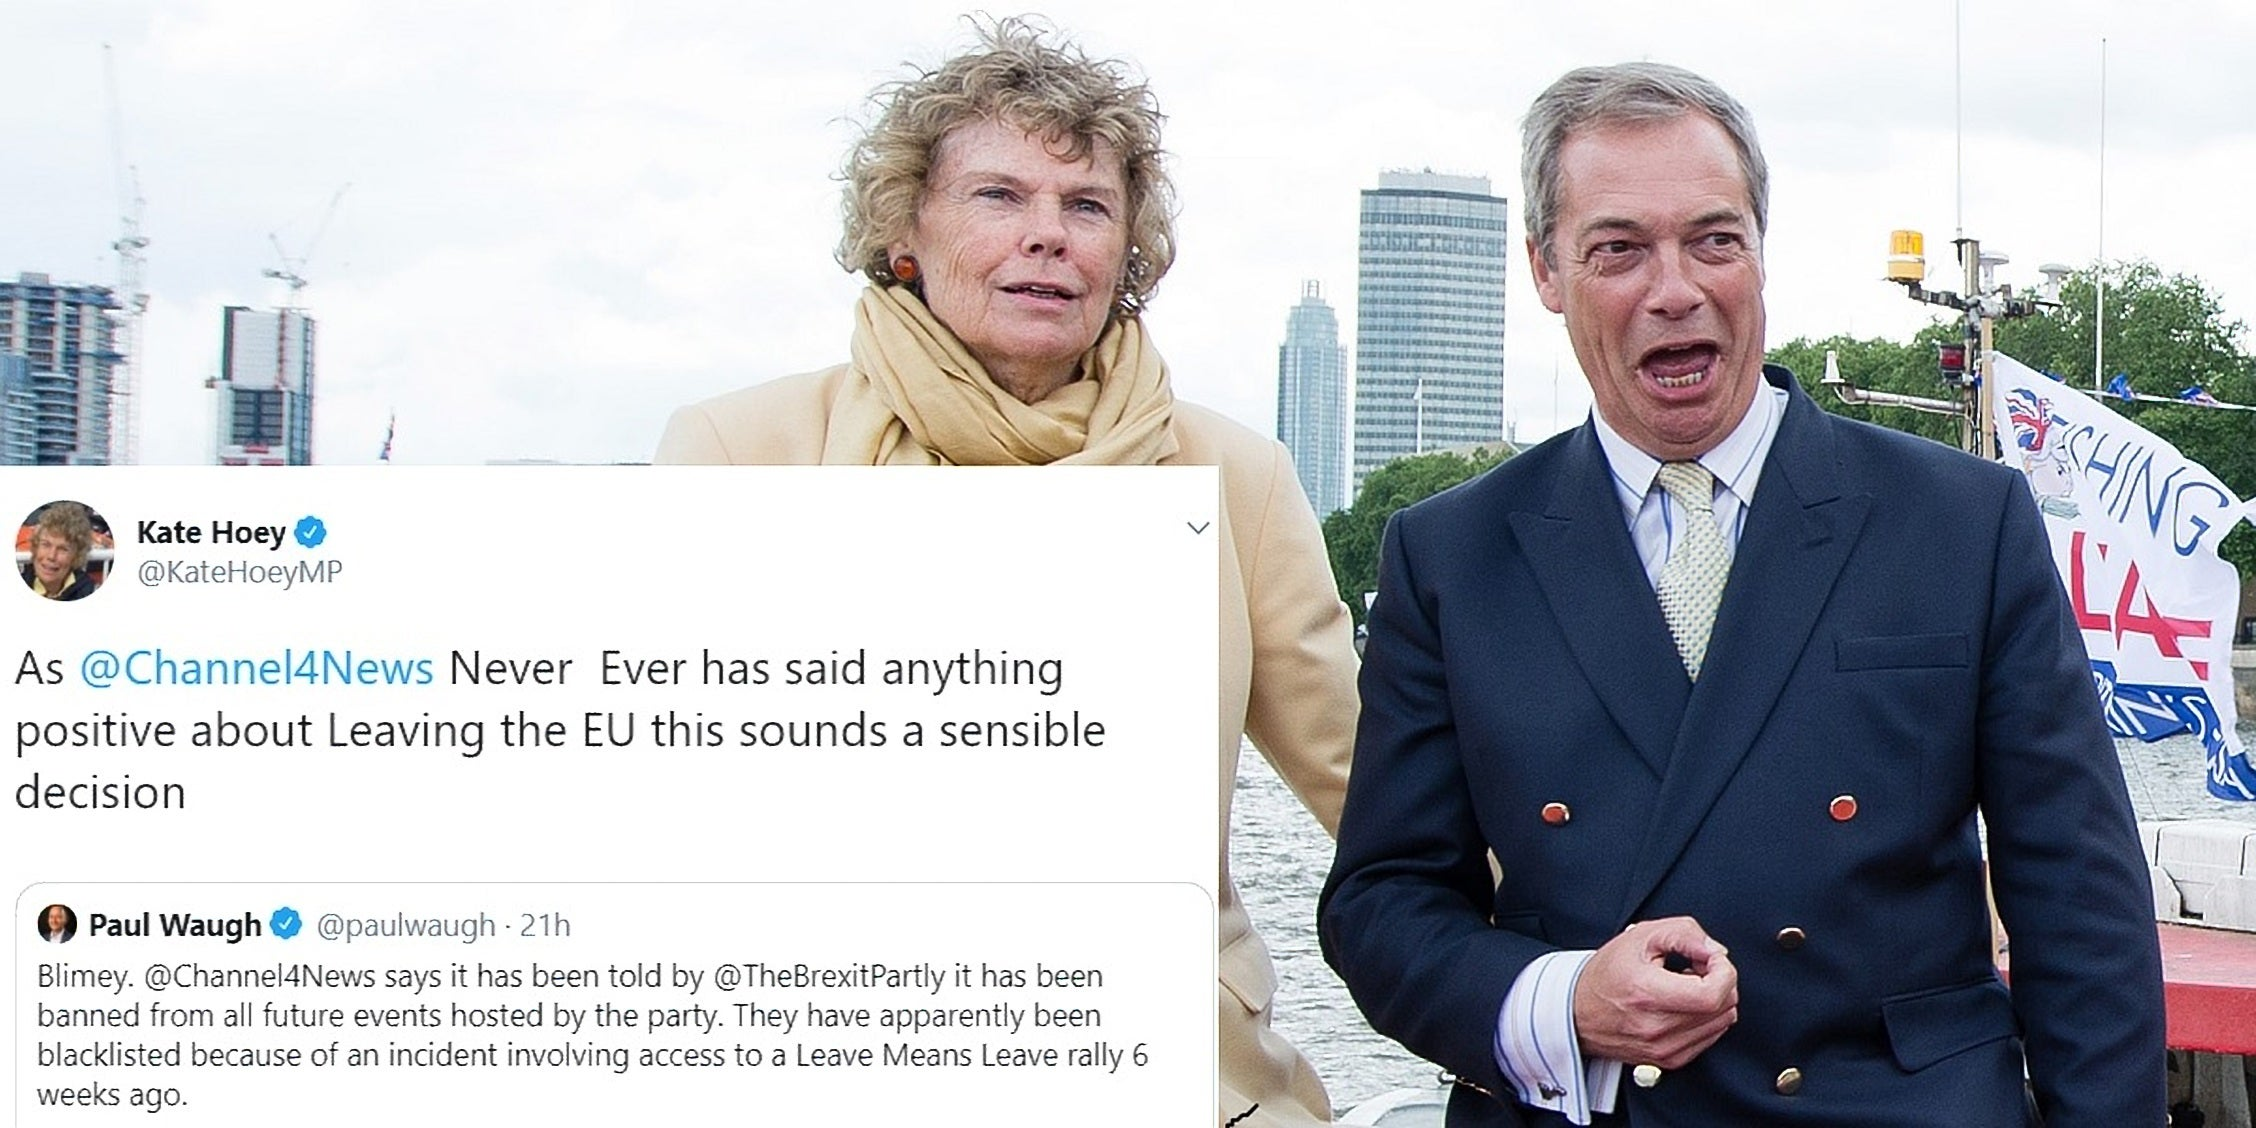 Nigel Farage: Labour MP Kate Hoey backs the Brexit Party's